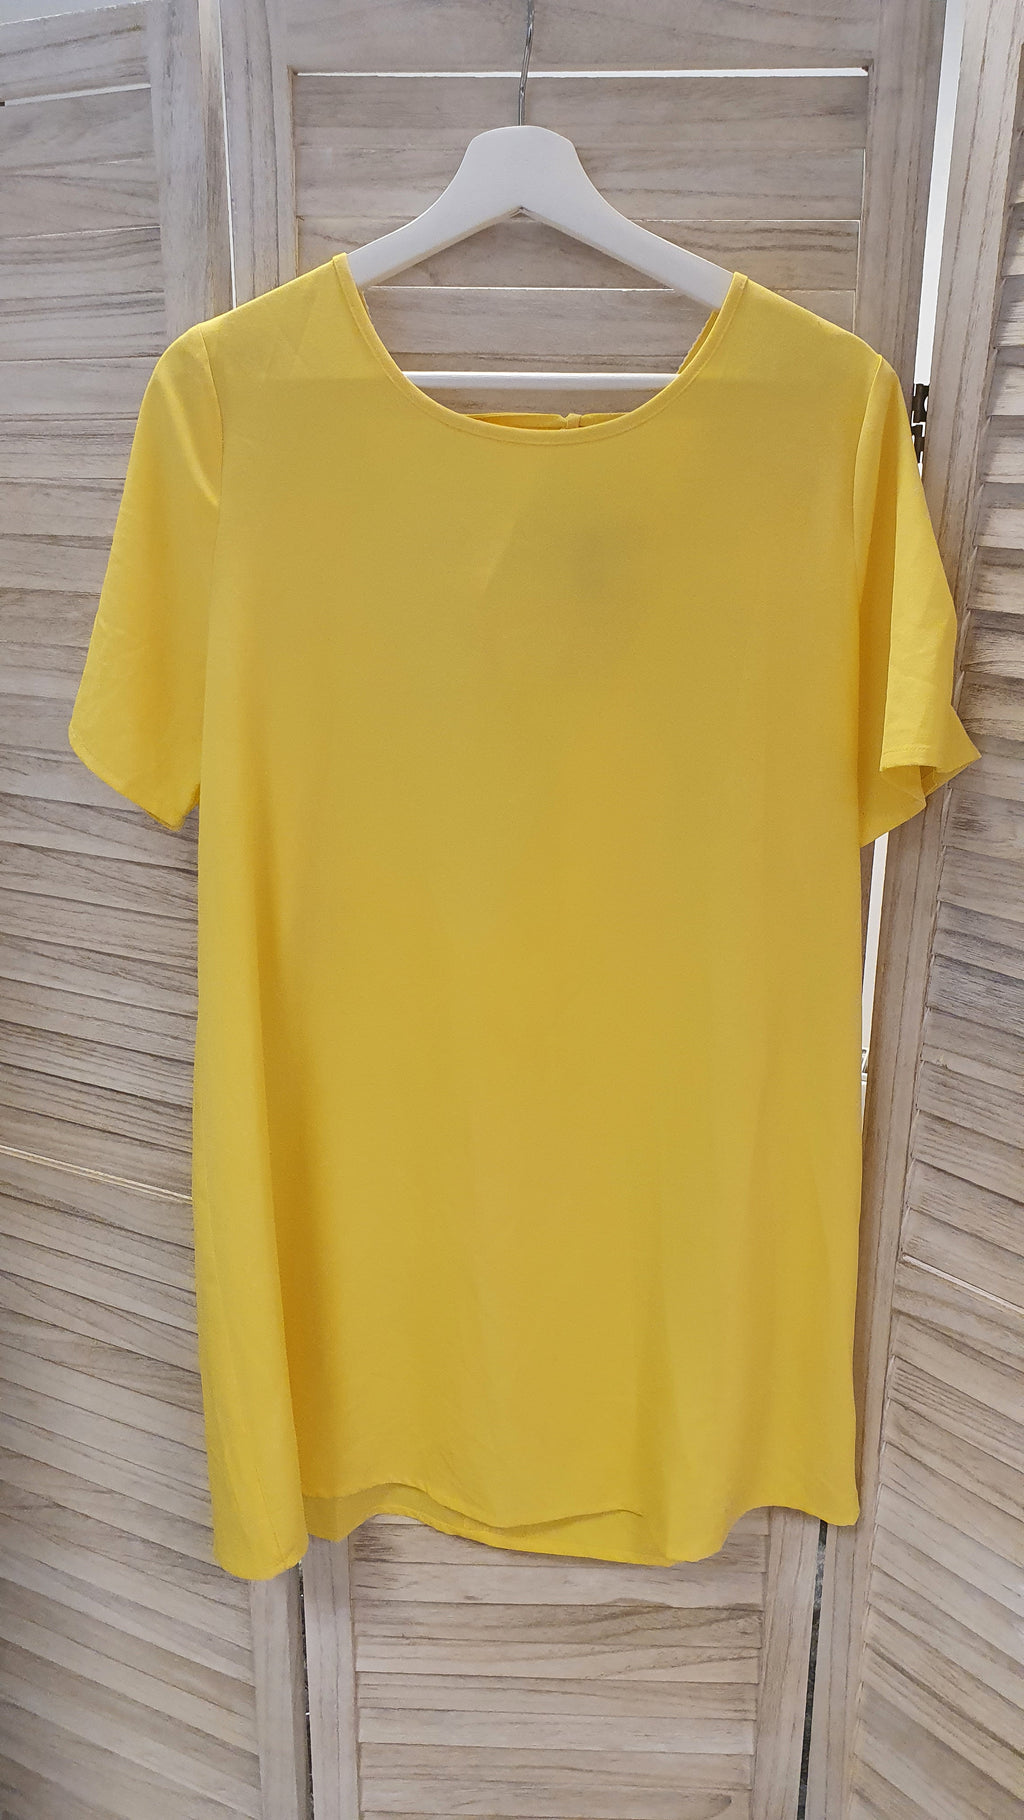 Tula Backless Beach Dress - Yellow size medium